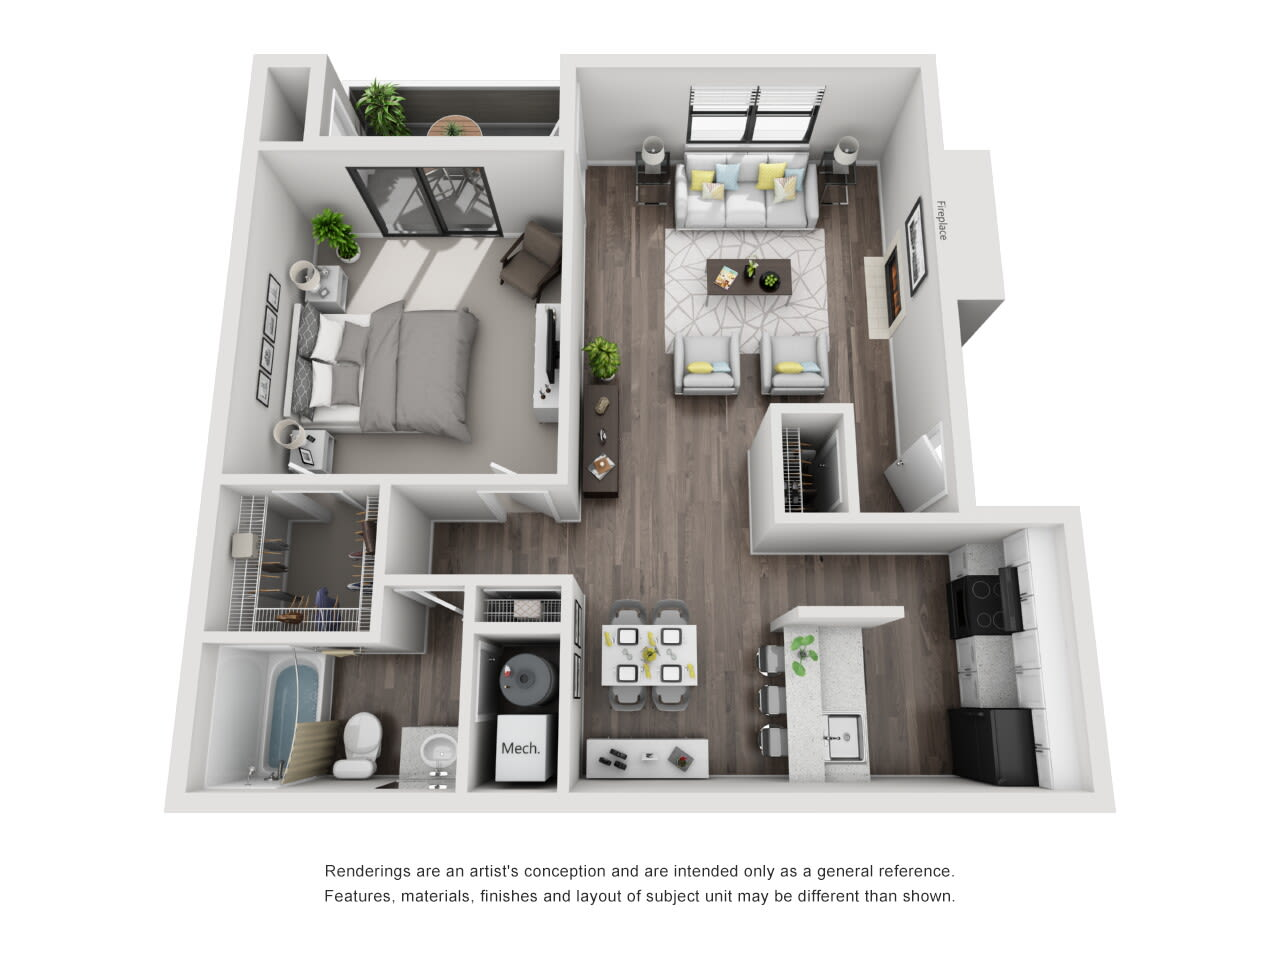 A4 1 bed 1 bath at The Alcove